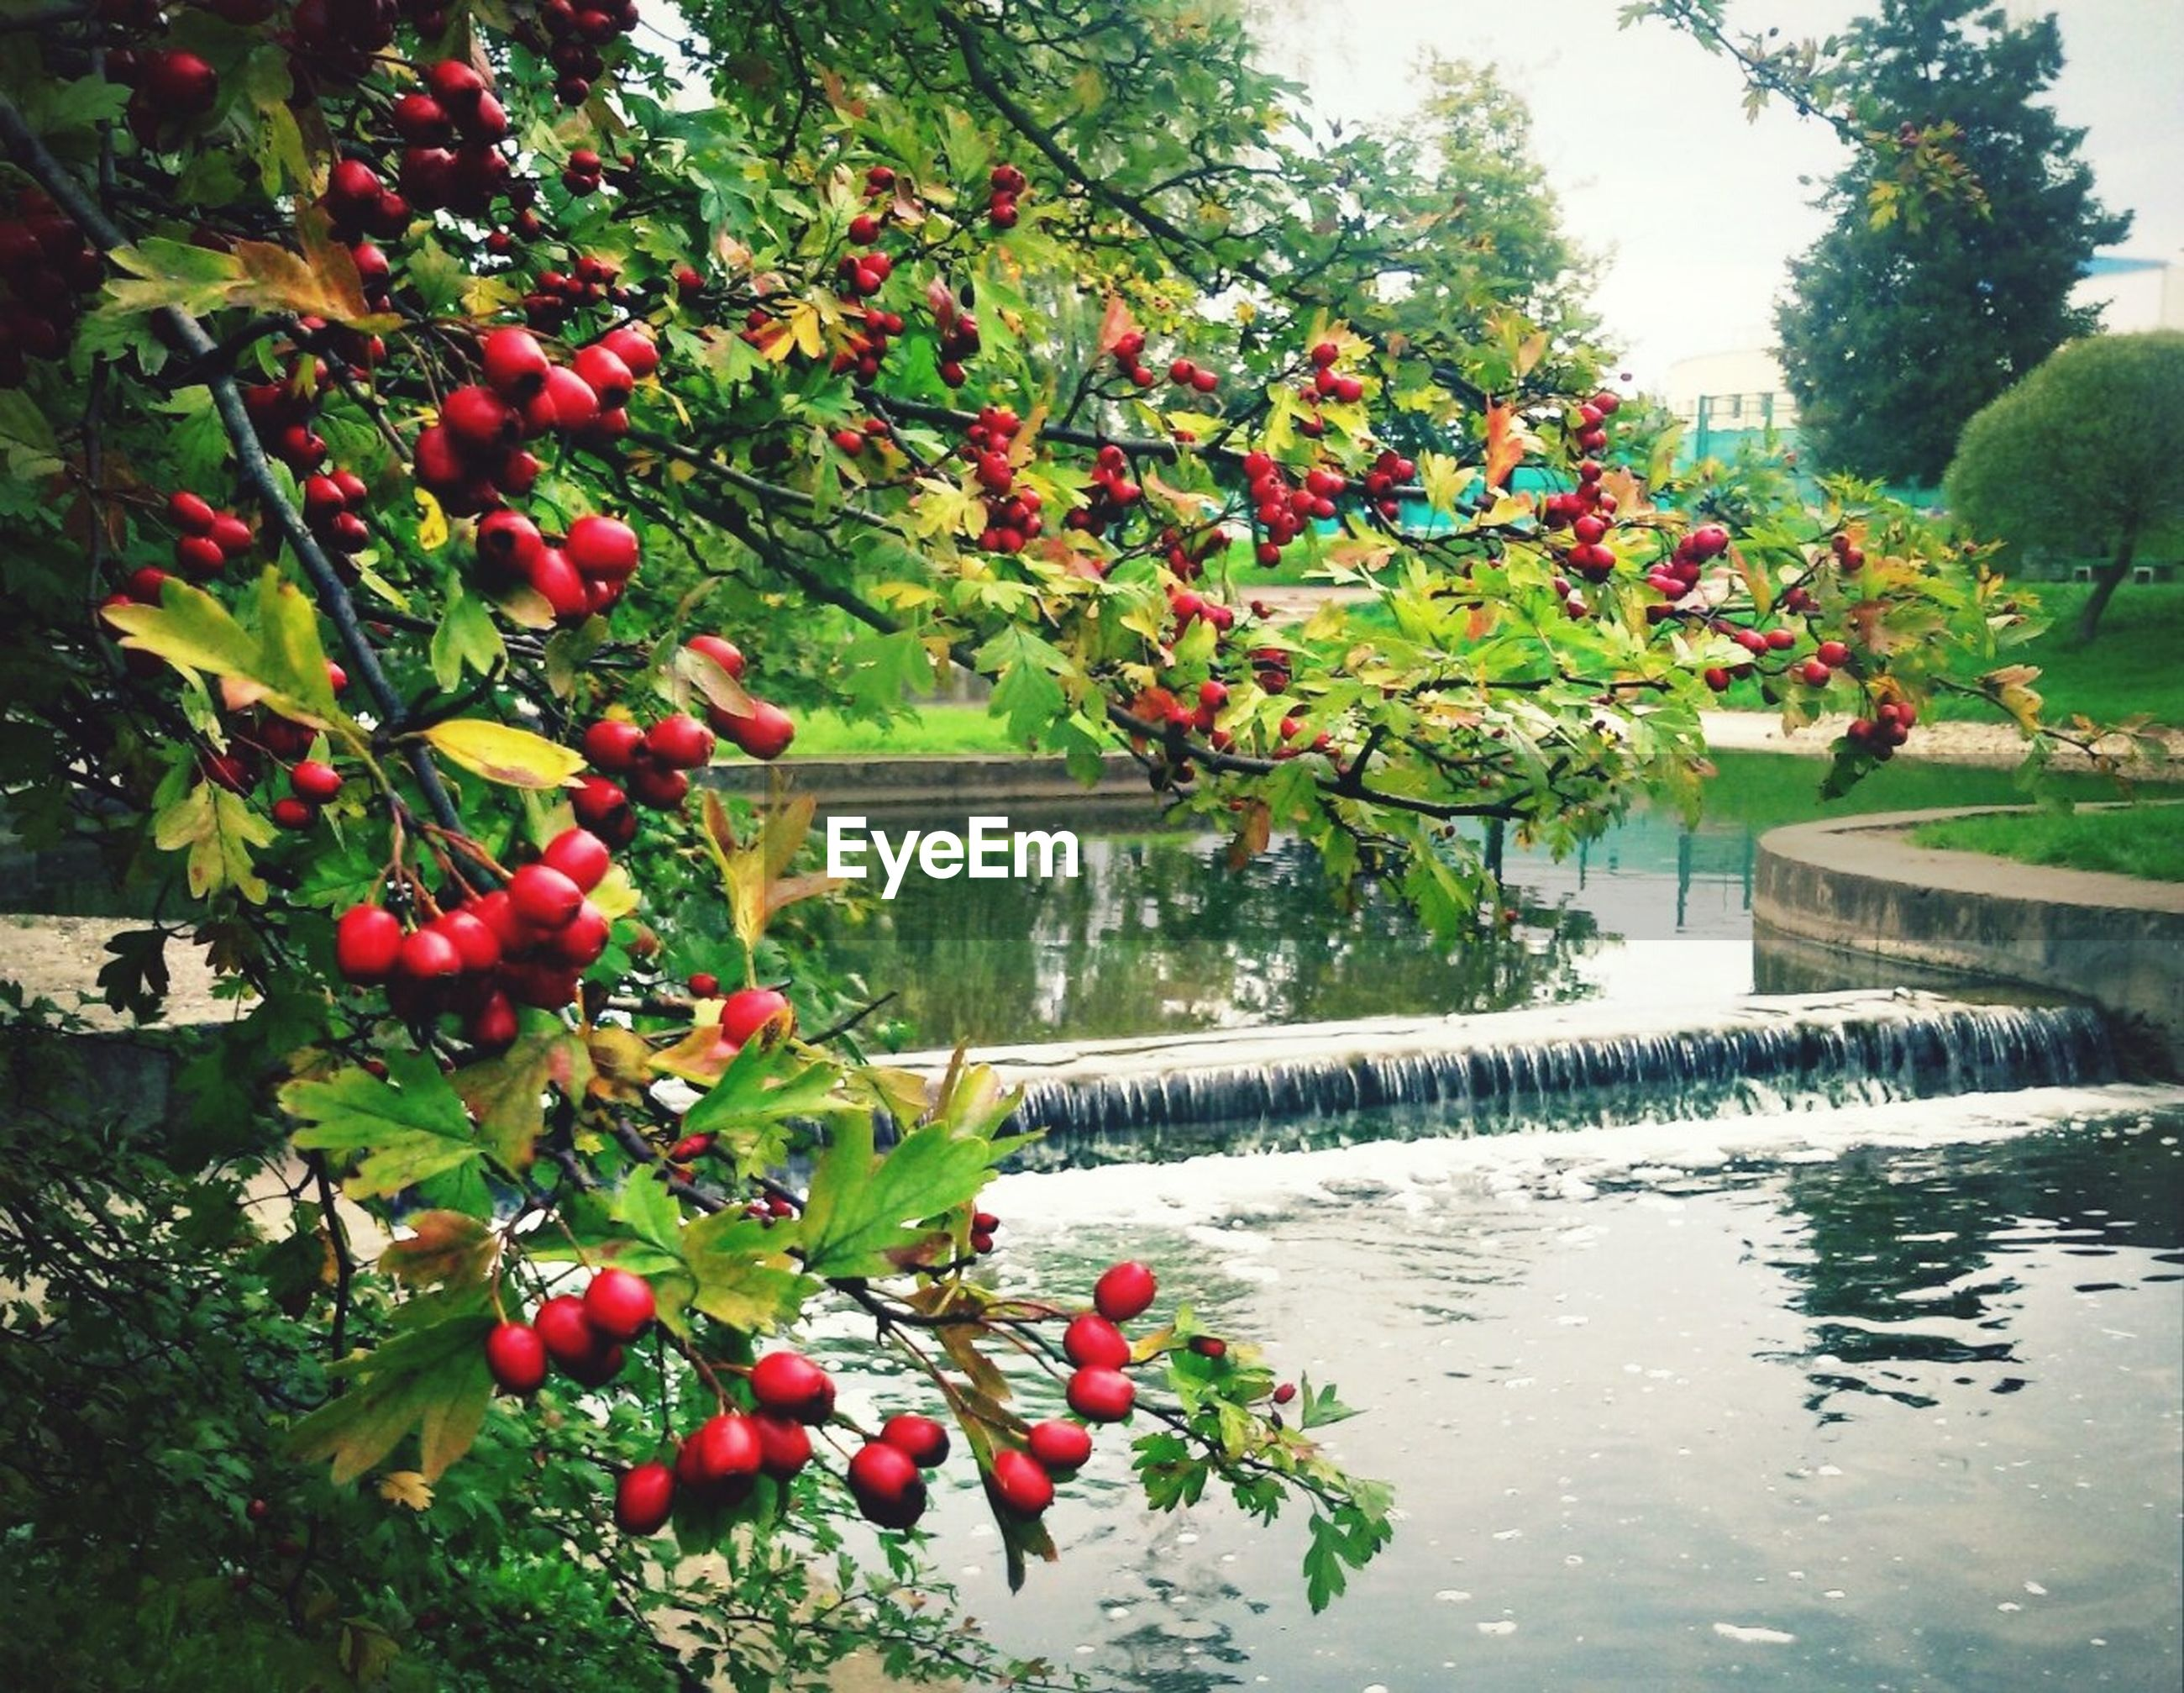 tree, water, growth, red, freshness, leaf, fruit, branch, nature, flower, beauty in nature, plant, green color, reflection, tranquility, day, lake, growing, outdoors, pond